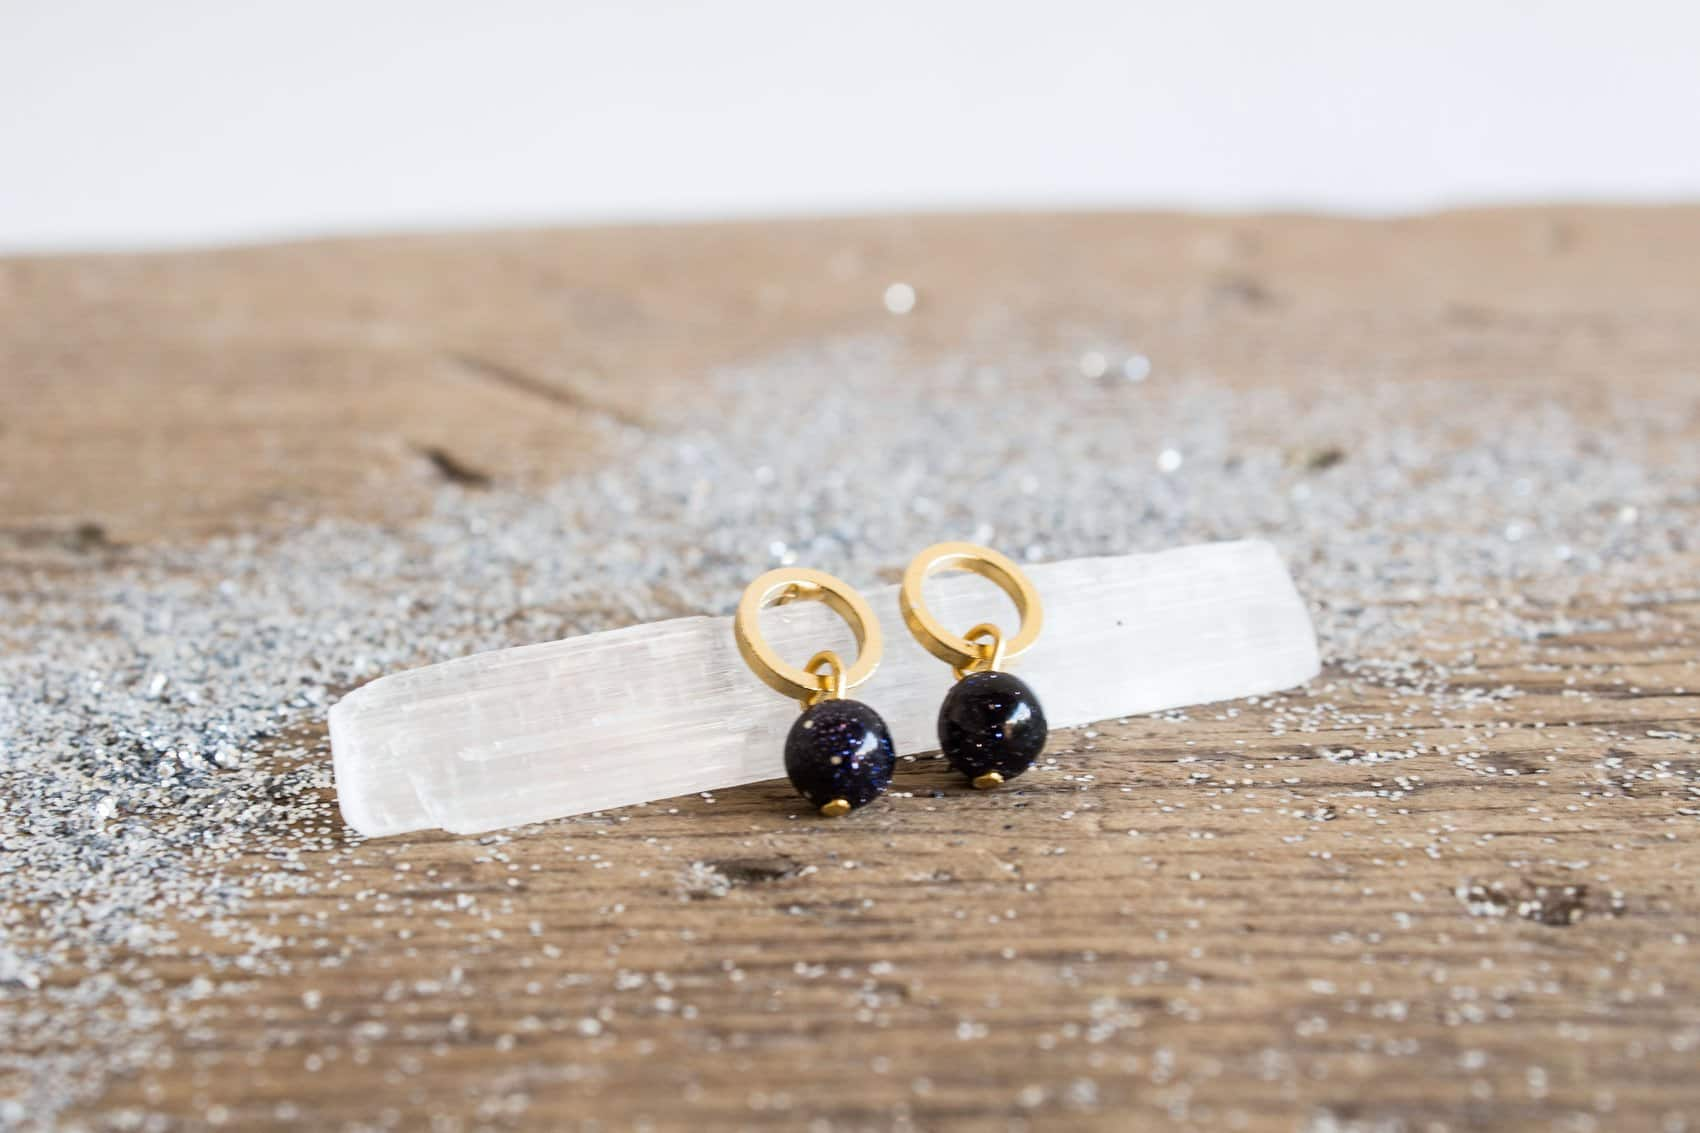 Eclipse Pendientes/Earrings